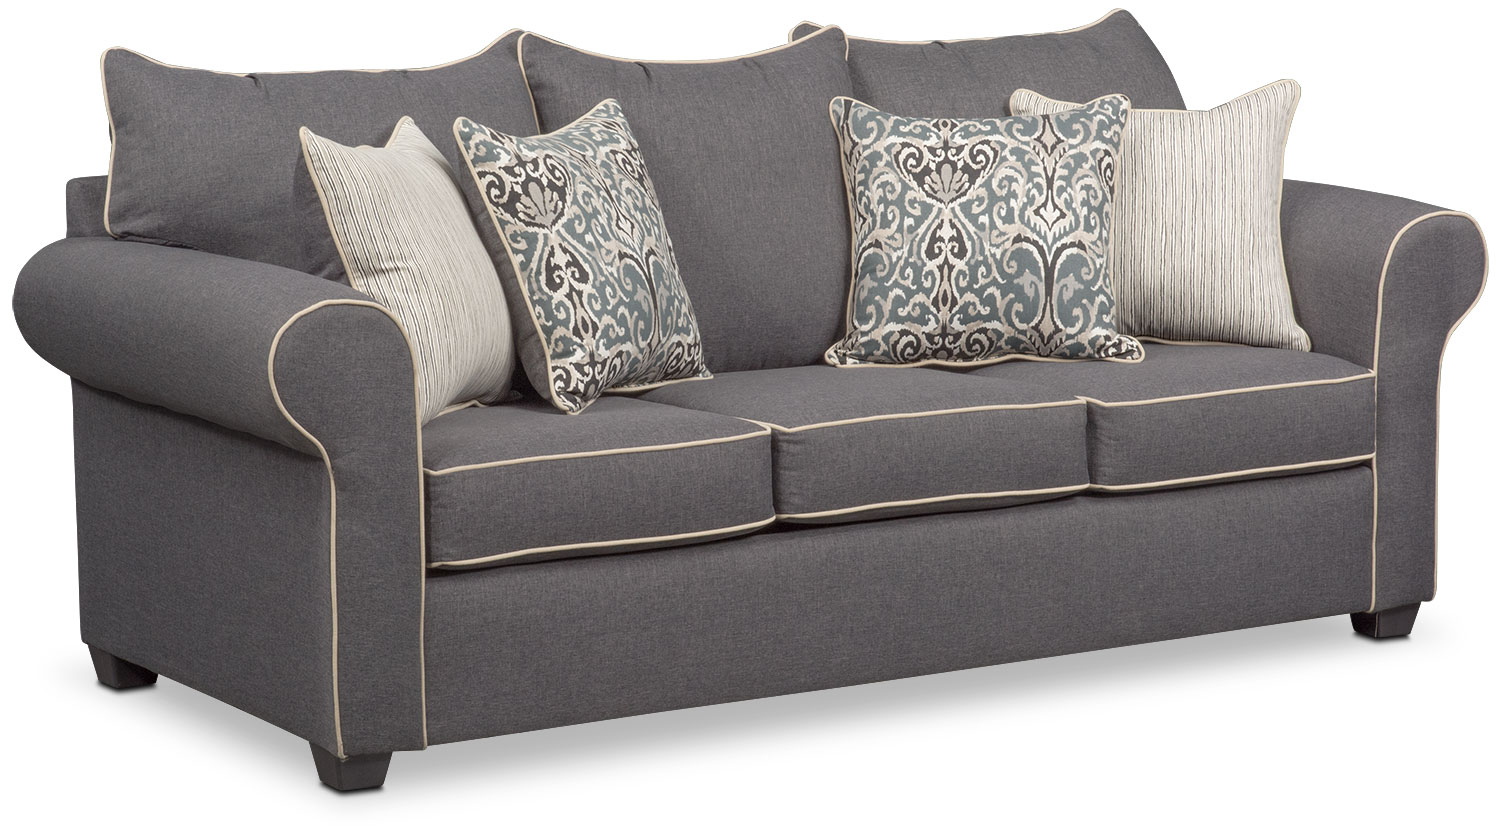 mitc gold and bob williams sofa stanton reclining reviews factory outlet sofas bryden slate american signature ...